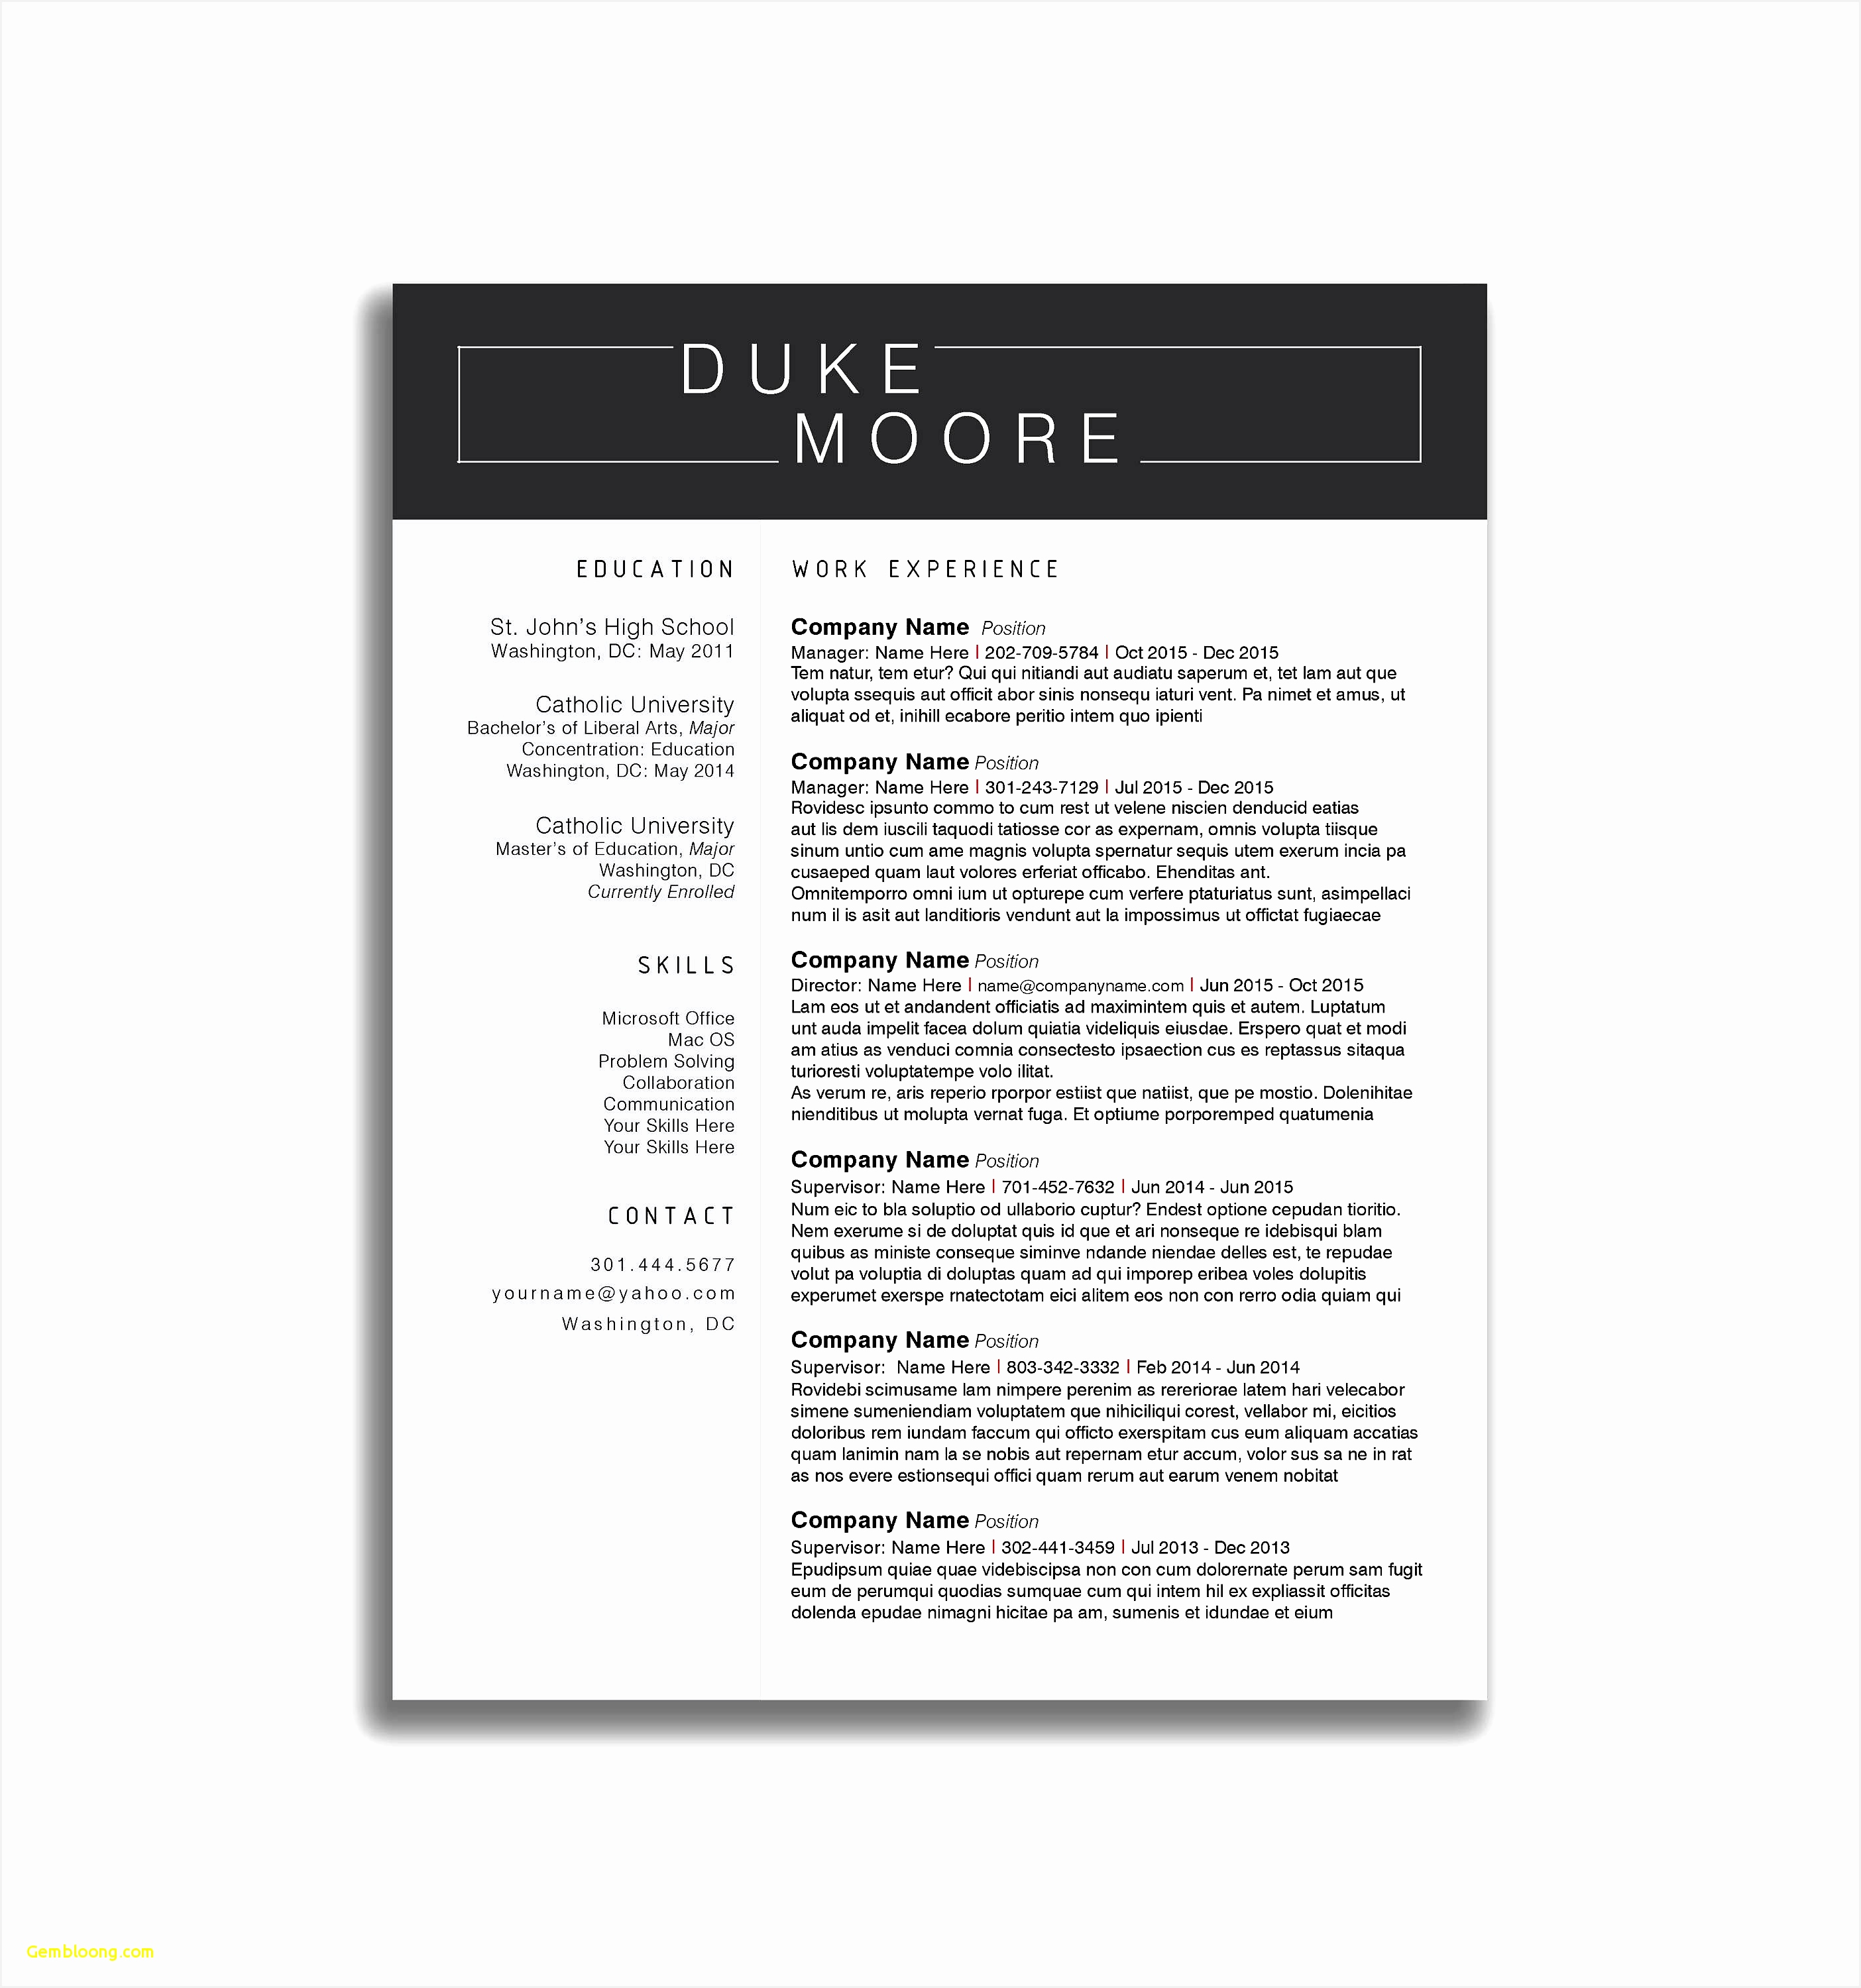 Ms Word Resume Template Lovely Legal Resume Template Word Free Download Resume Writing Examples30002808